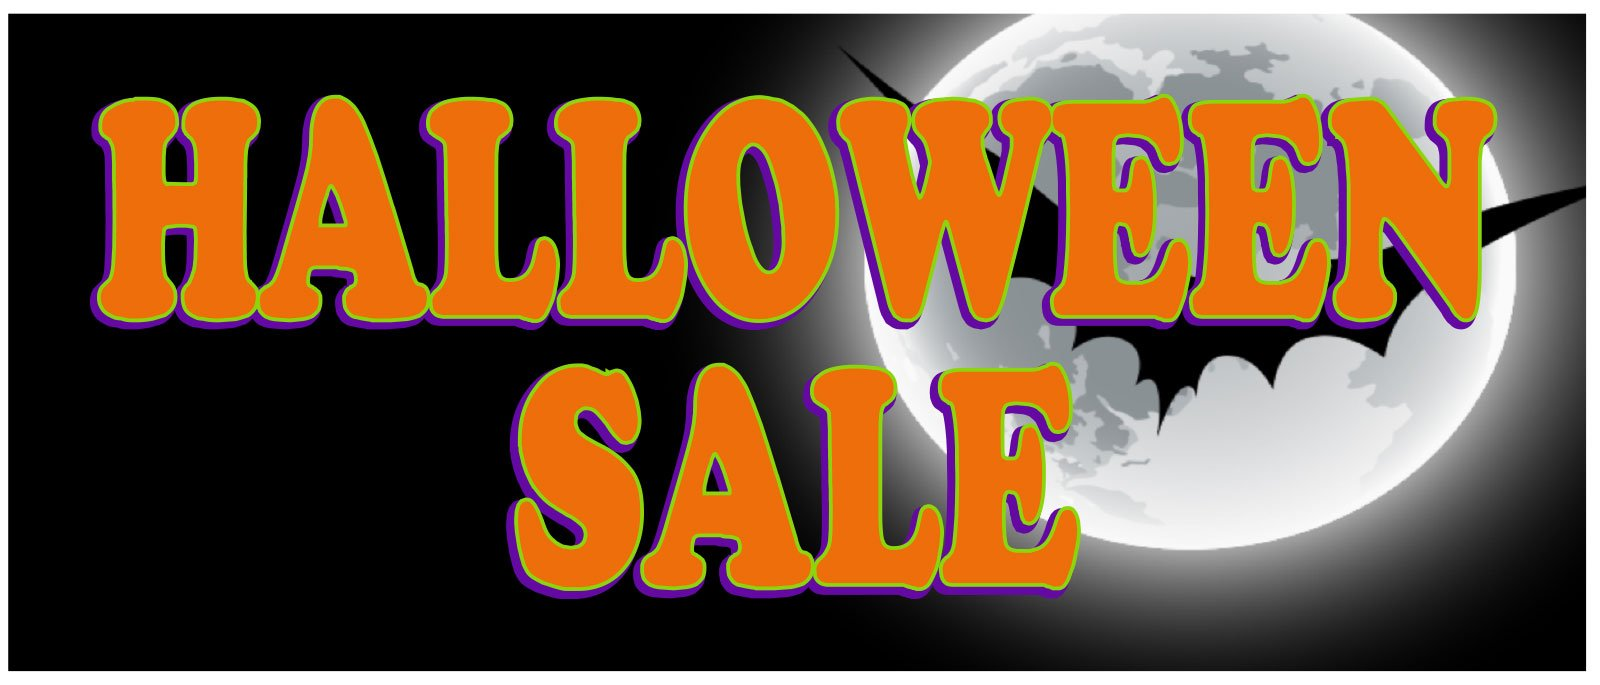 7Steroids Store News Image Halloween Sales - 40% OFF!